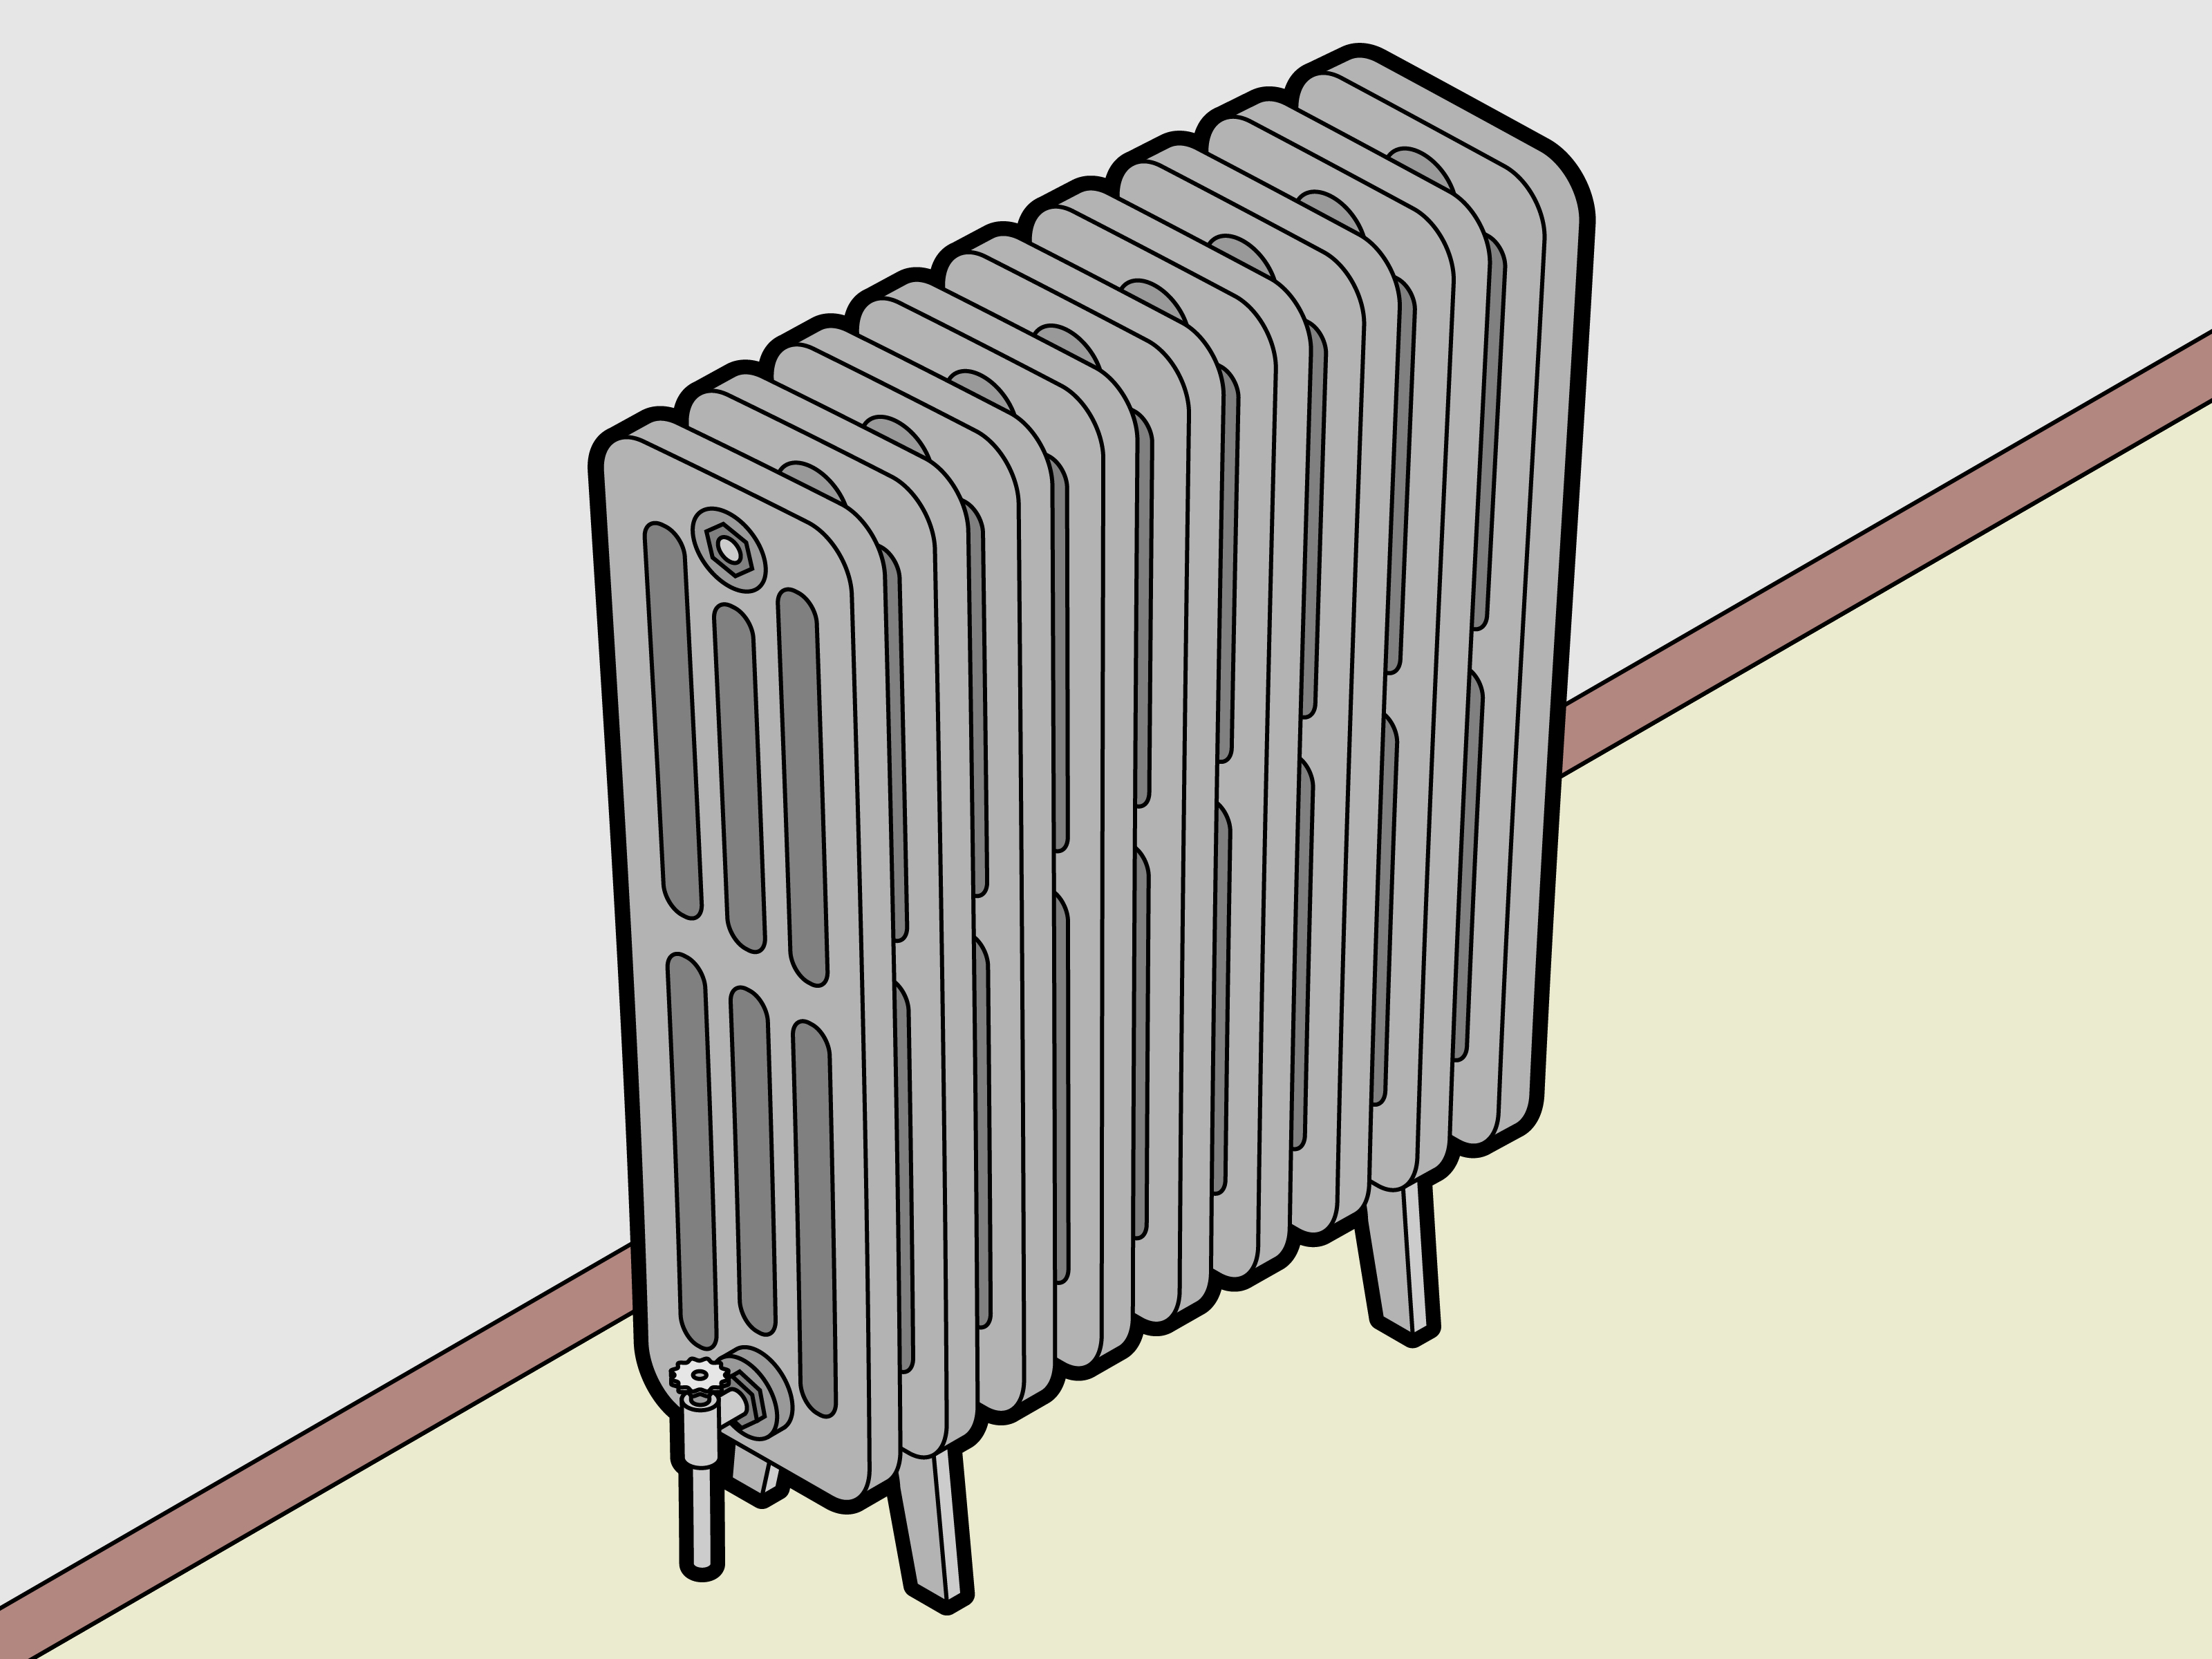 Wattage Radiator How To Size A Radiator 15 Steps With Pictures Wikihow